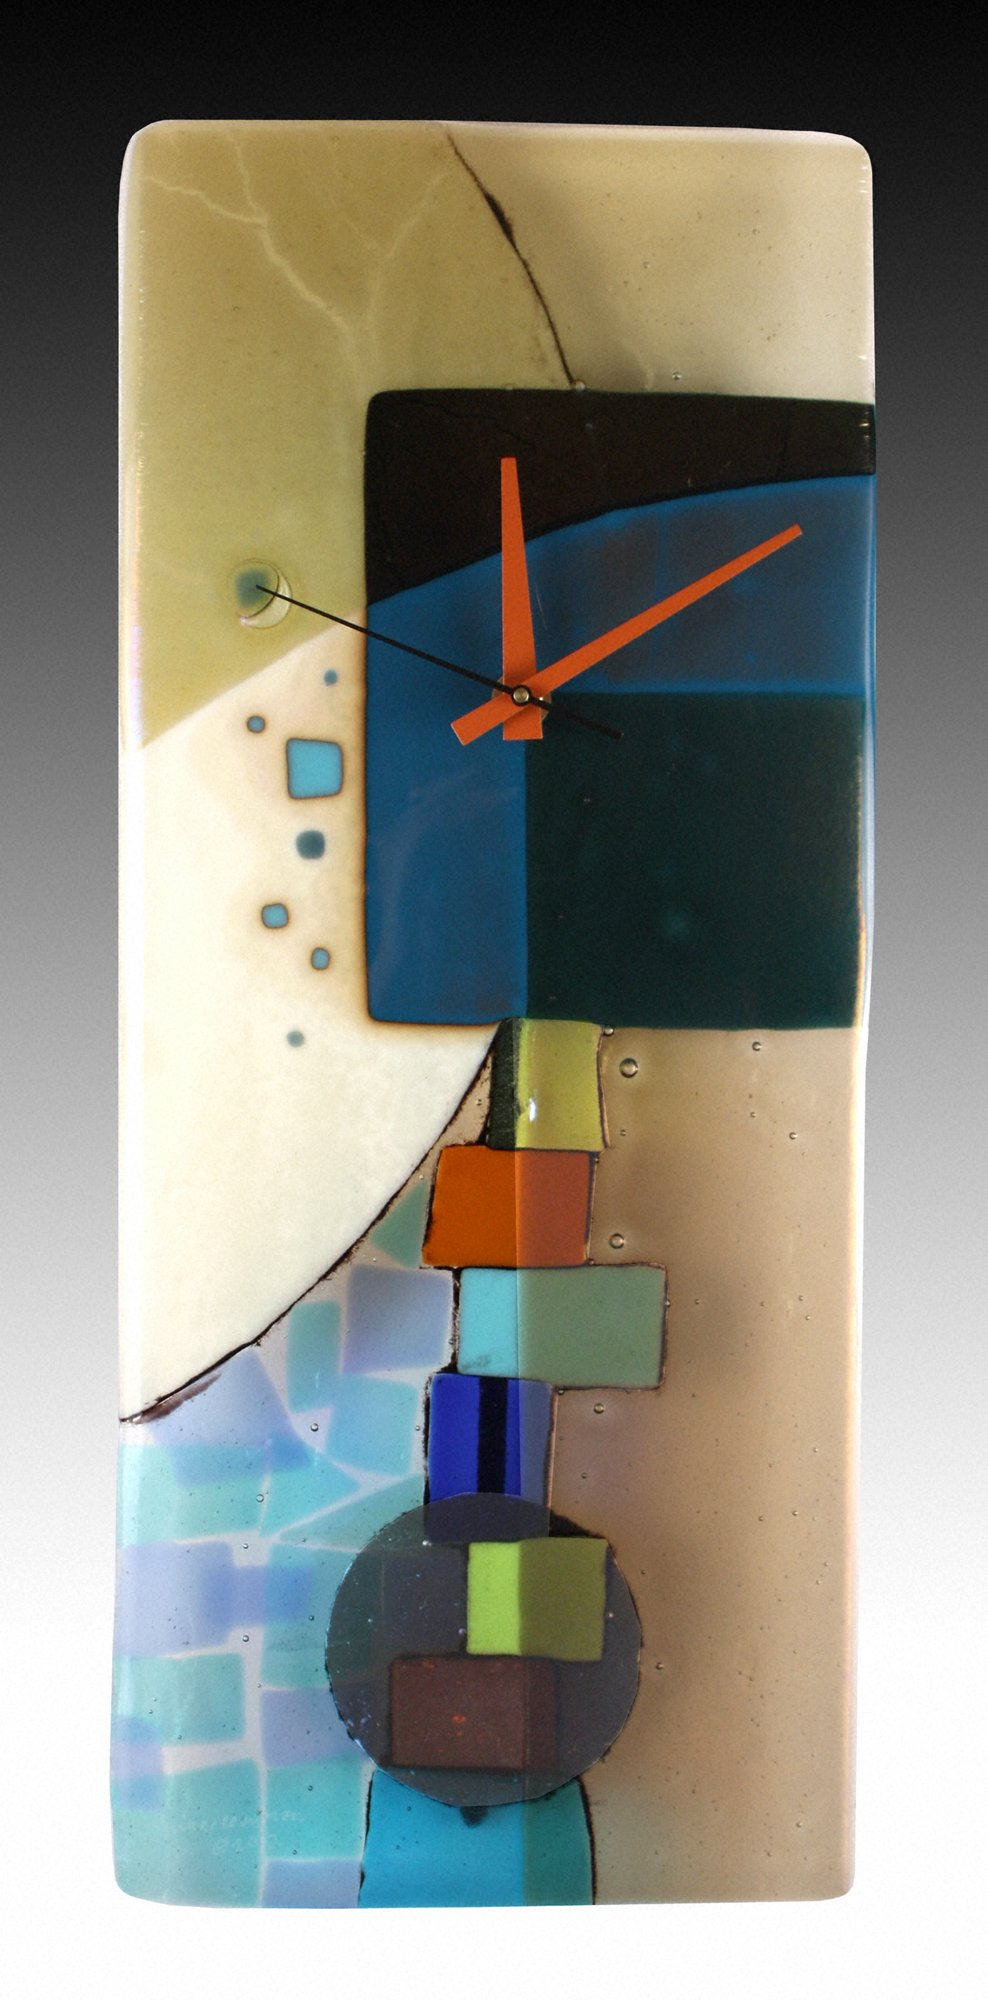 Andrea Fused Glass Pendulum Clock By Nina Cambron Art